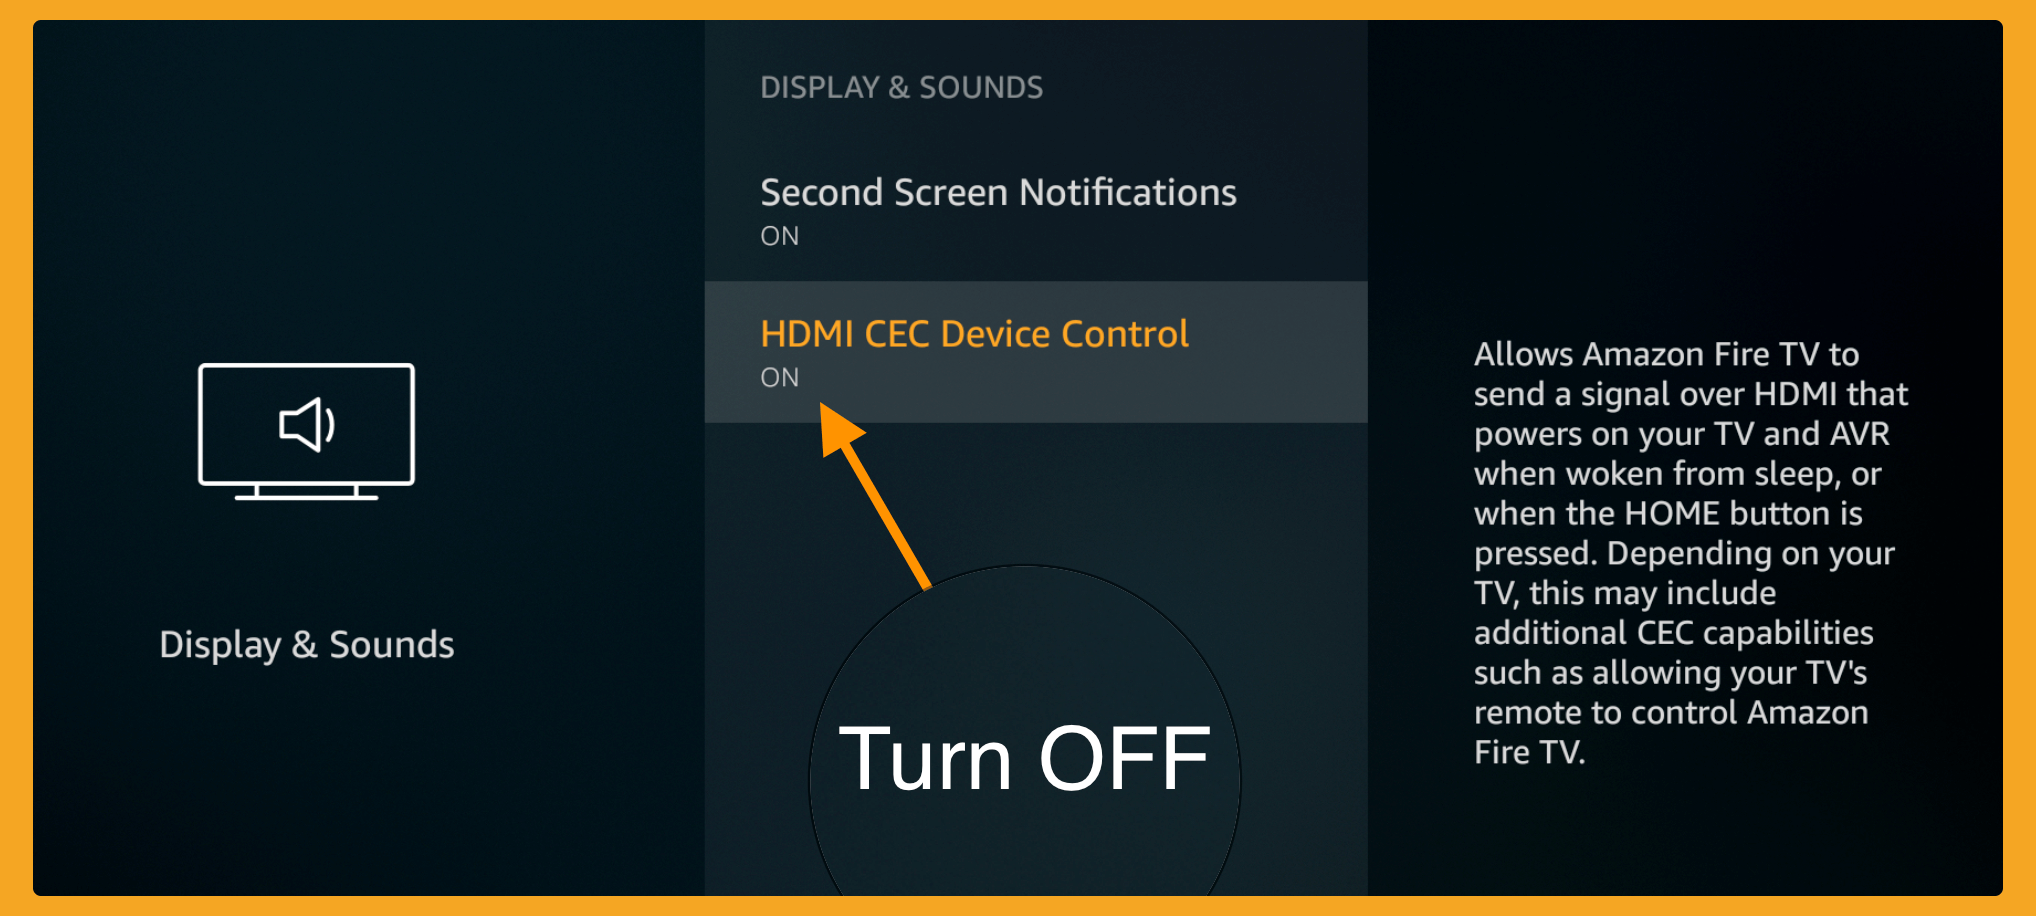 HDMI-CEC-Device-Control-to-Fix-Firestick-rebooting-issue